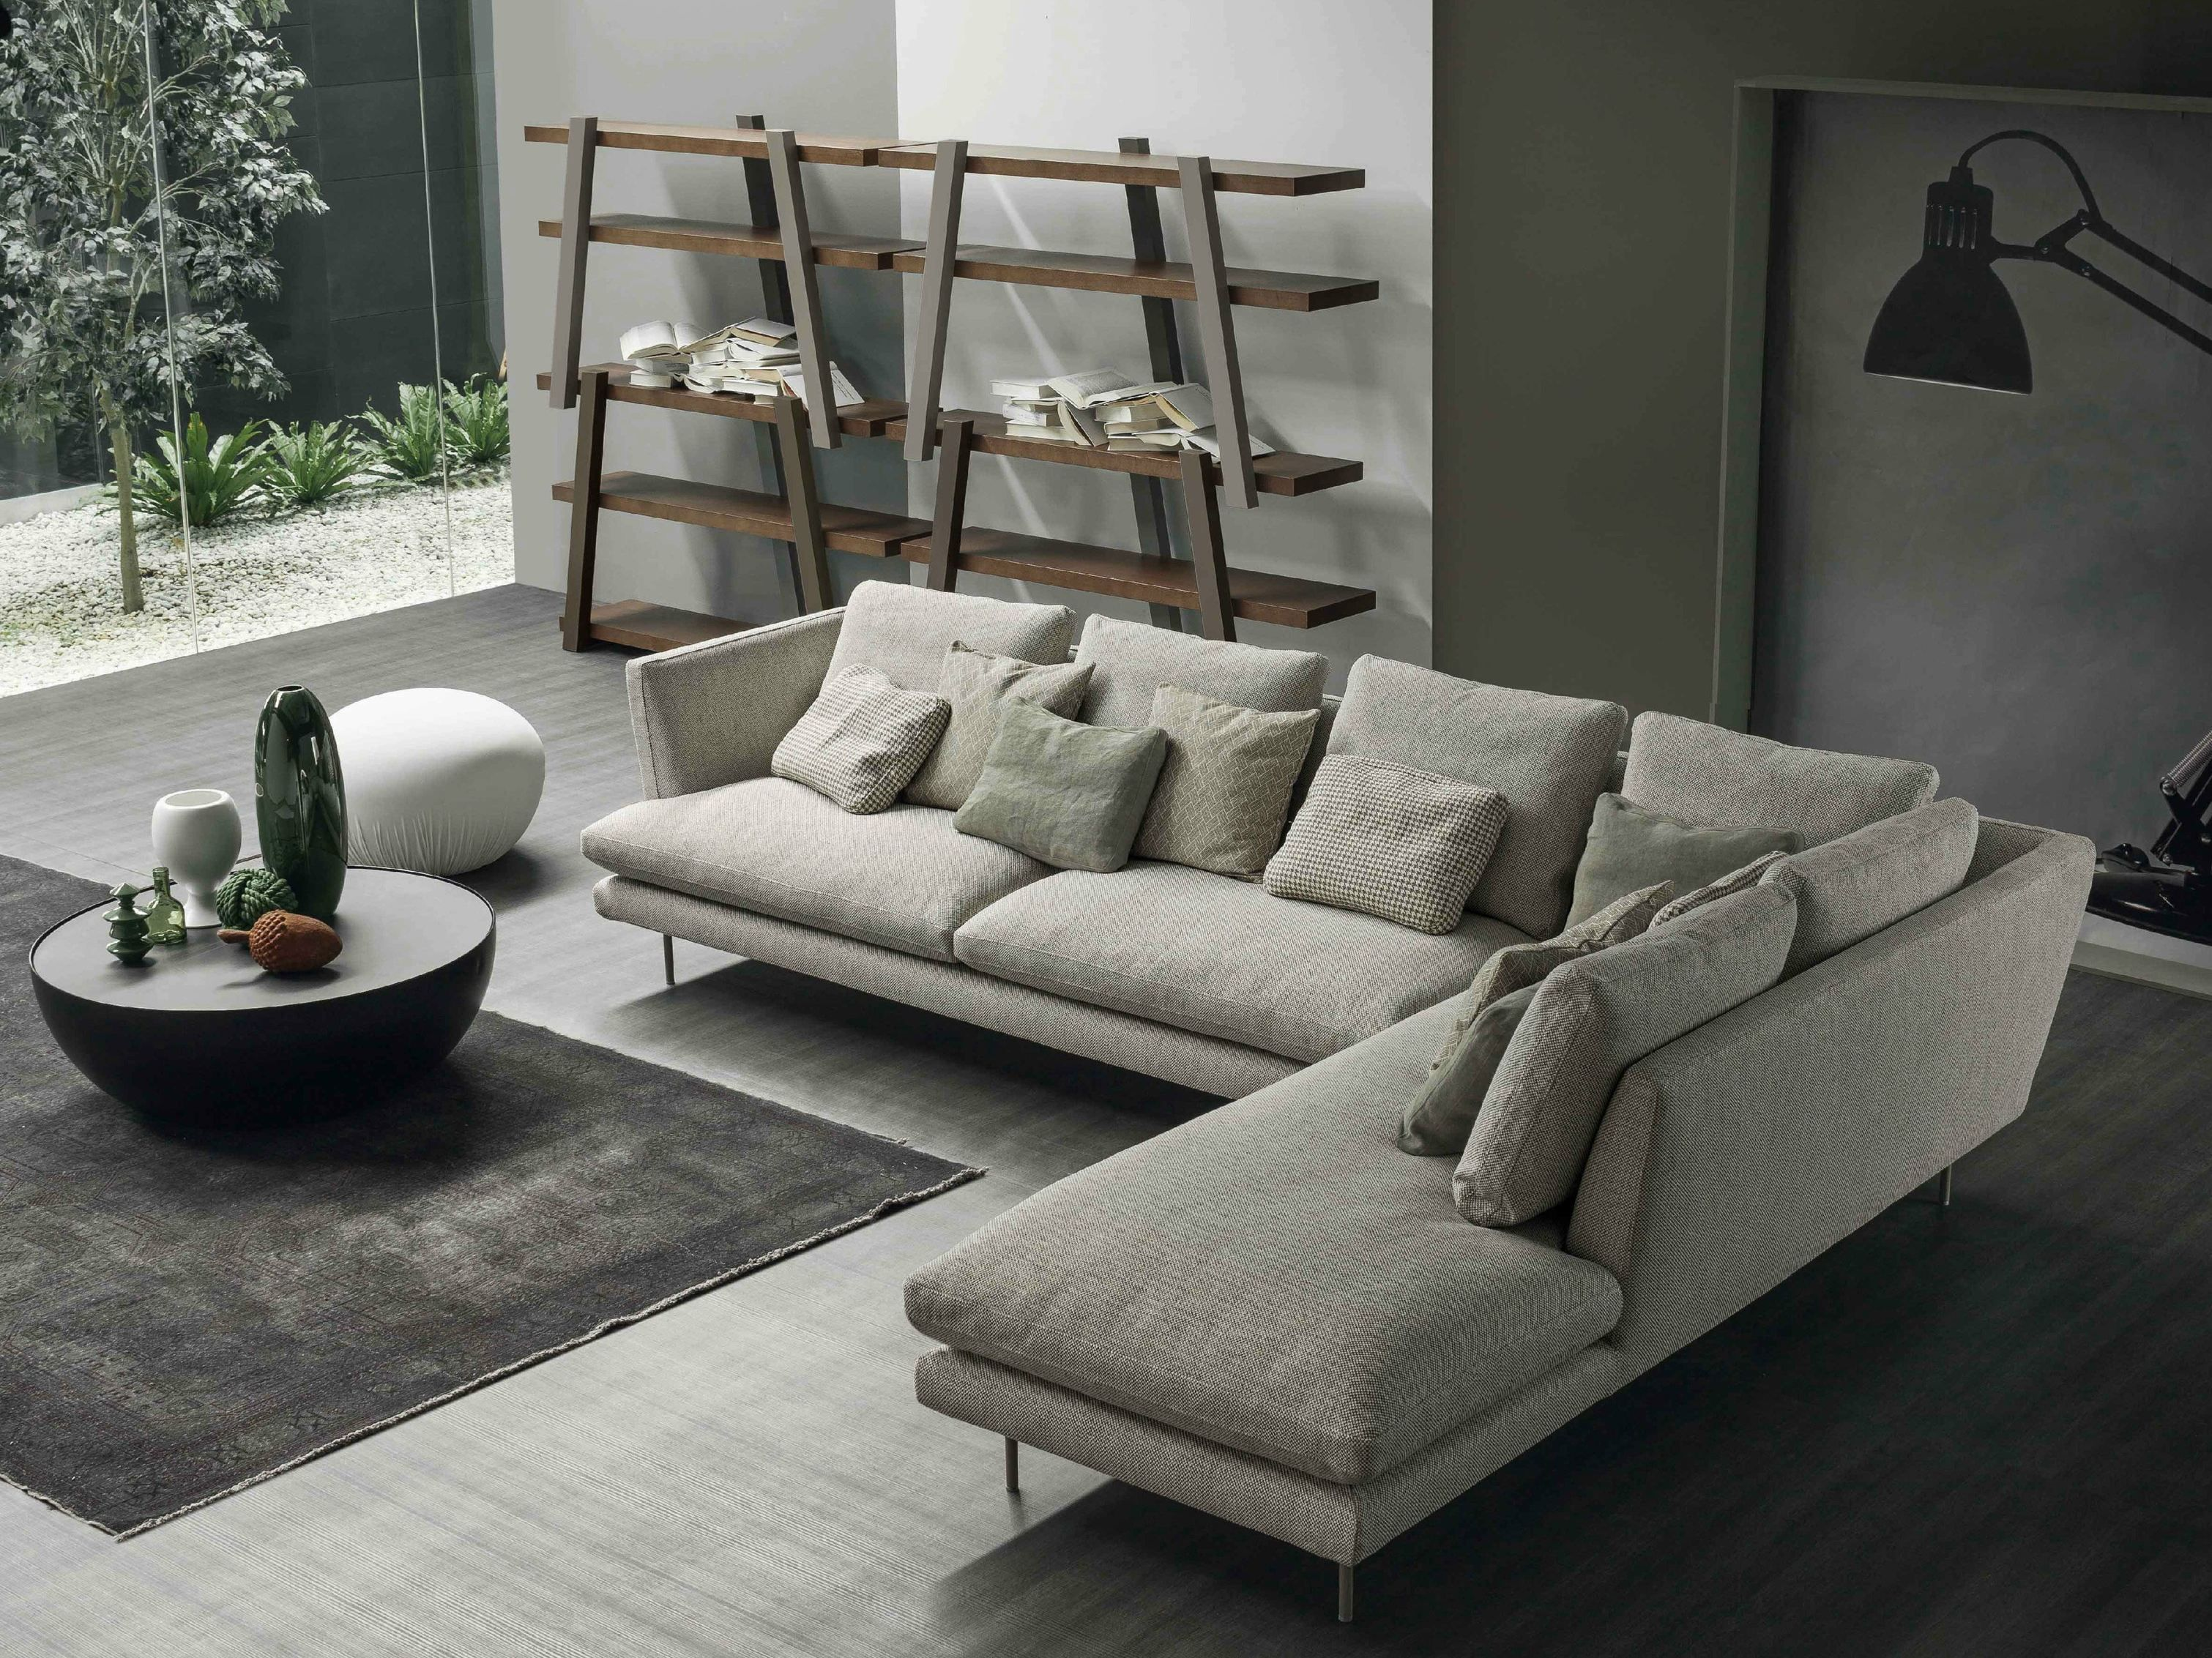 Lars Sofa With Chaise Longue By Bonaldo Design Giuseppe Vigano